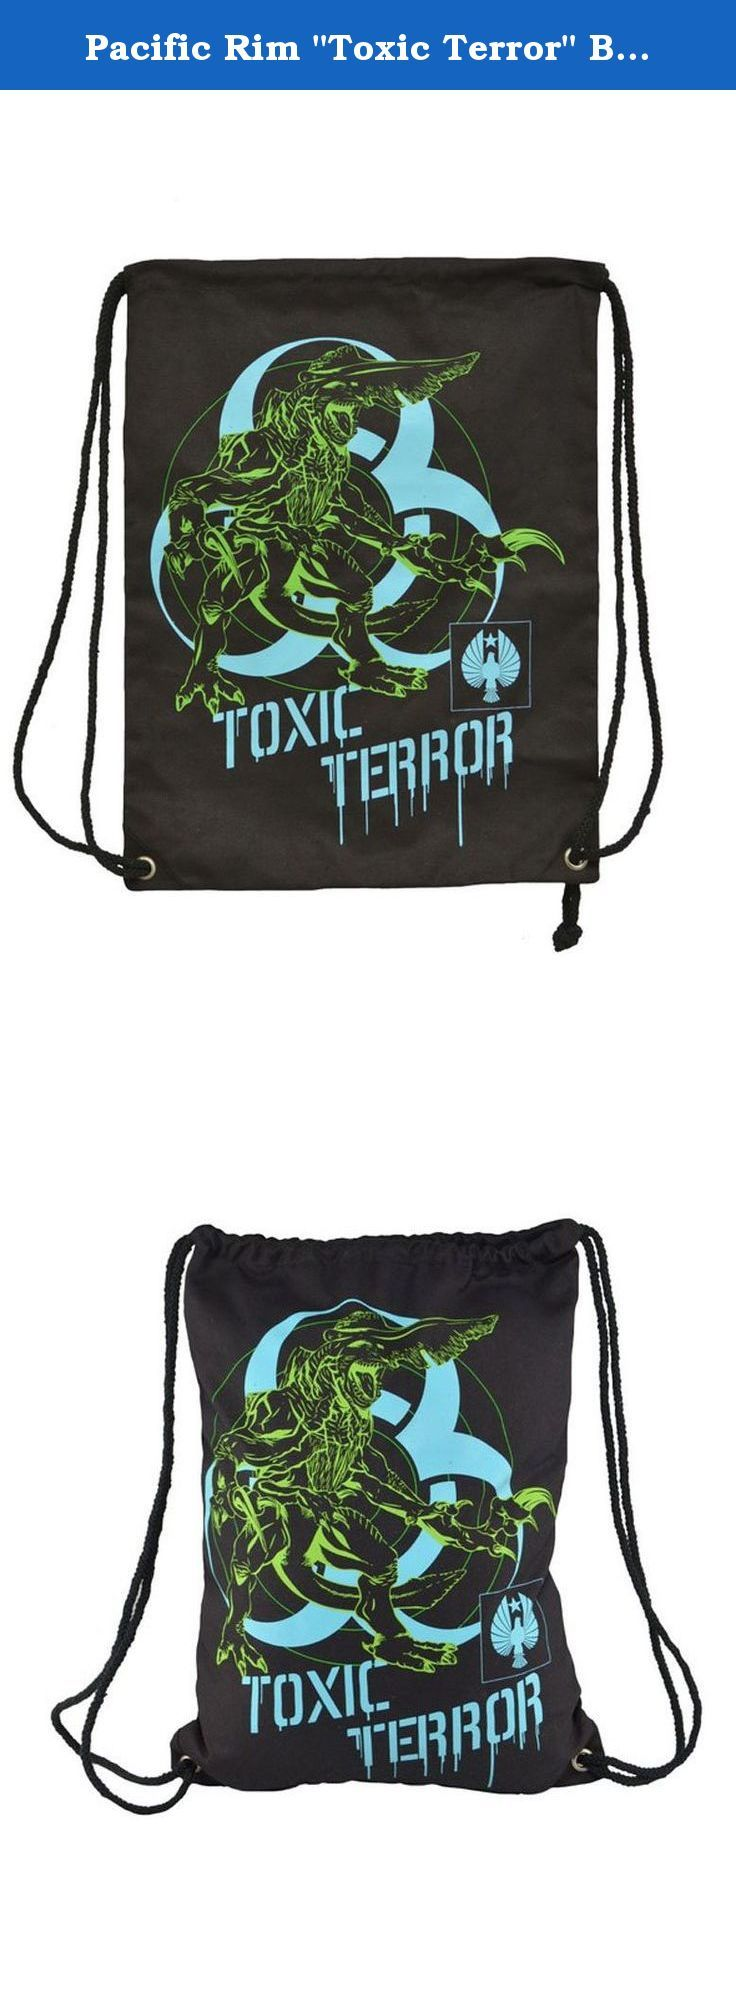 "Pacific Rim ""Toxic Terror"" Bag Sack. Pacific Rim Back Sack Toxic."